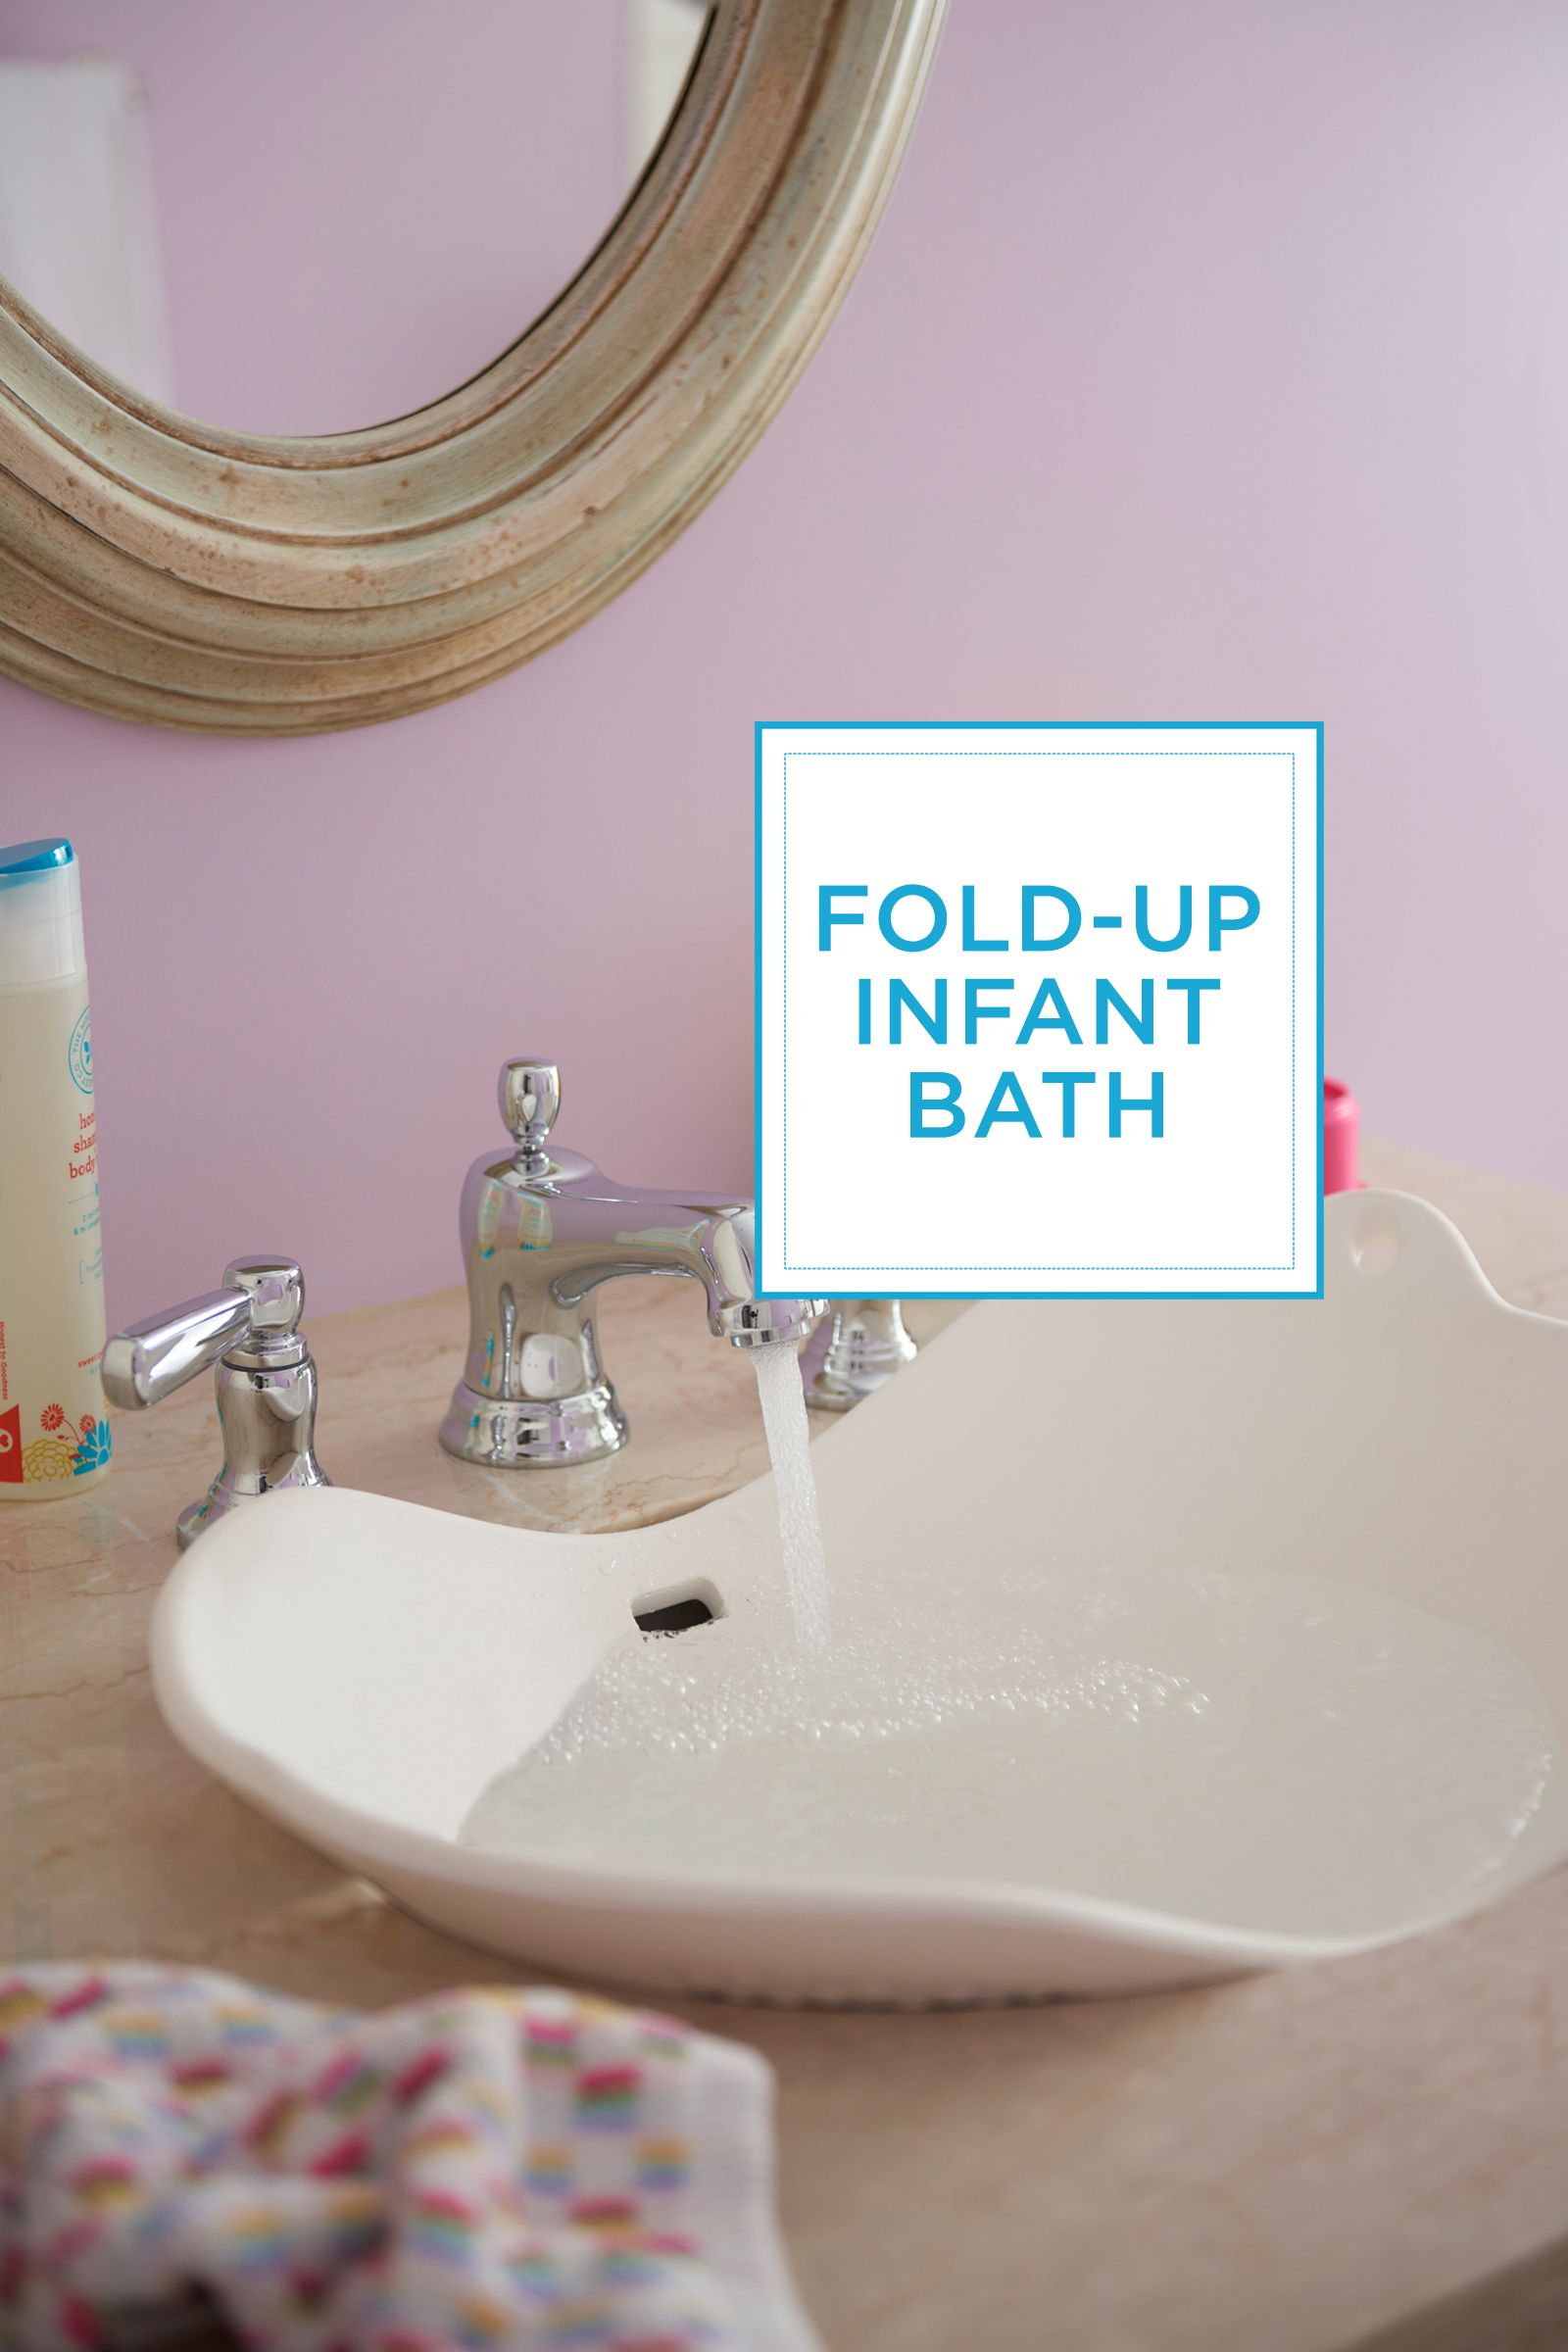 """<p>Splish, splash, baby's taking a bath! A fold-up infant tub, a super-soft washcloth, and a few colorful toys are the only signs there's a newborn on the scene of this still-serene room.<br><br><br><br><br><br><br><em></em></p><p><em>Foldable infant bath, <a href=""""http://www.toysrus.com/buy/bath-tubs/puj-flyte-5513800-15834816"""" target=""""_blank"""">ToysRUs.com</a></em><br></p>"""